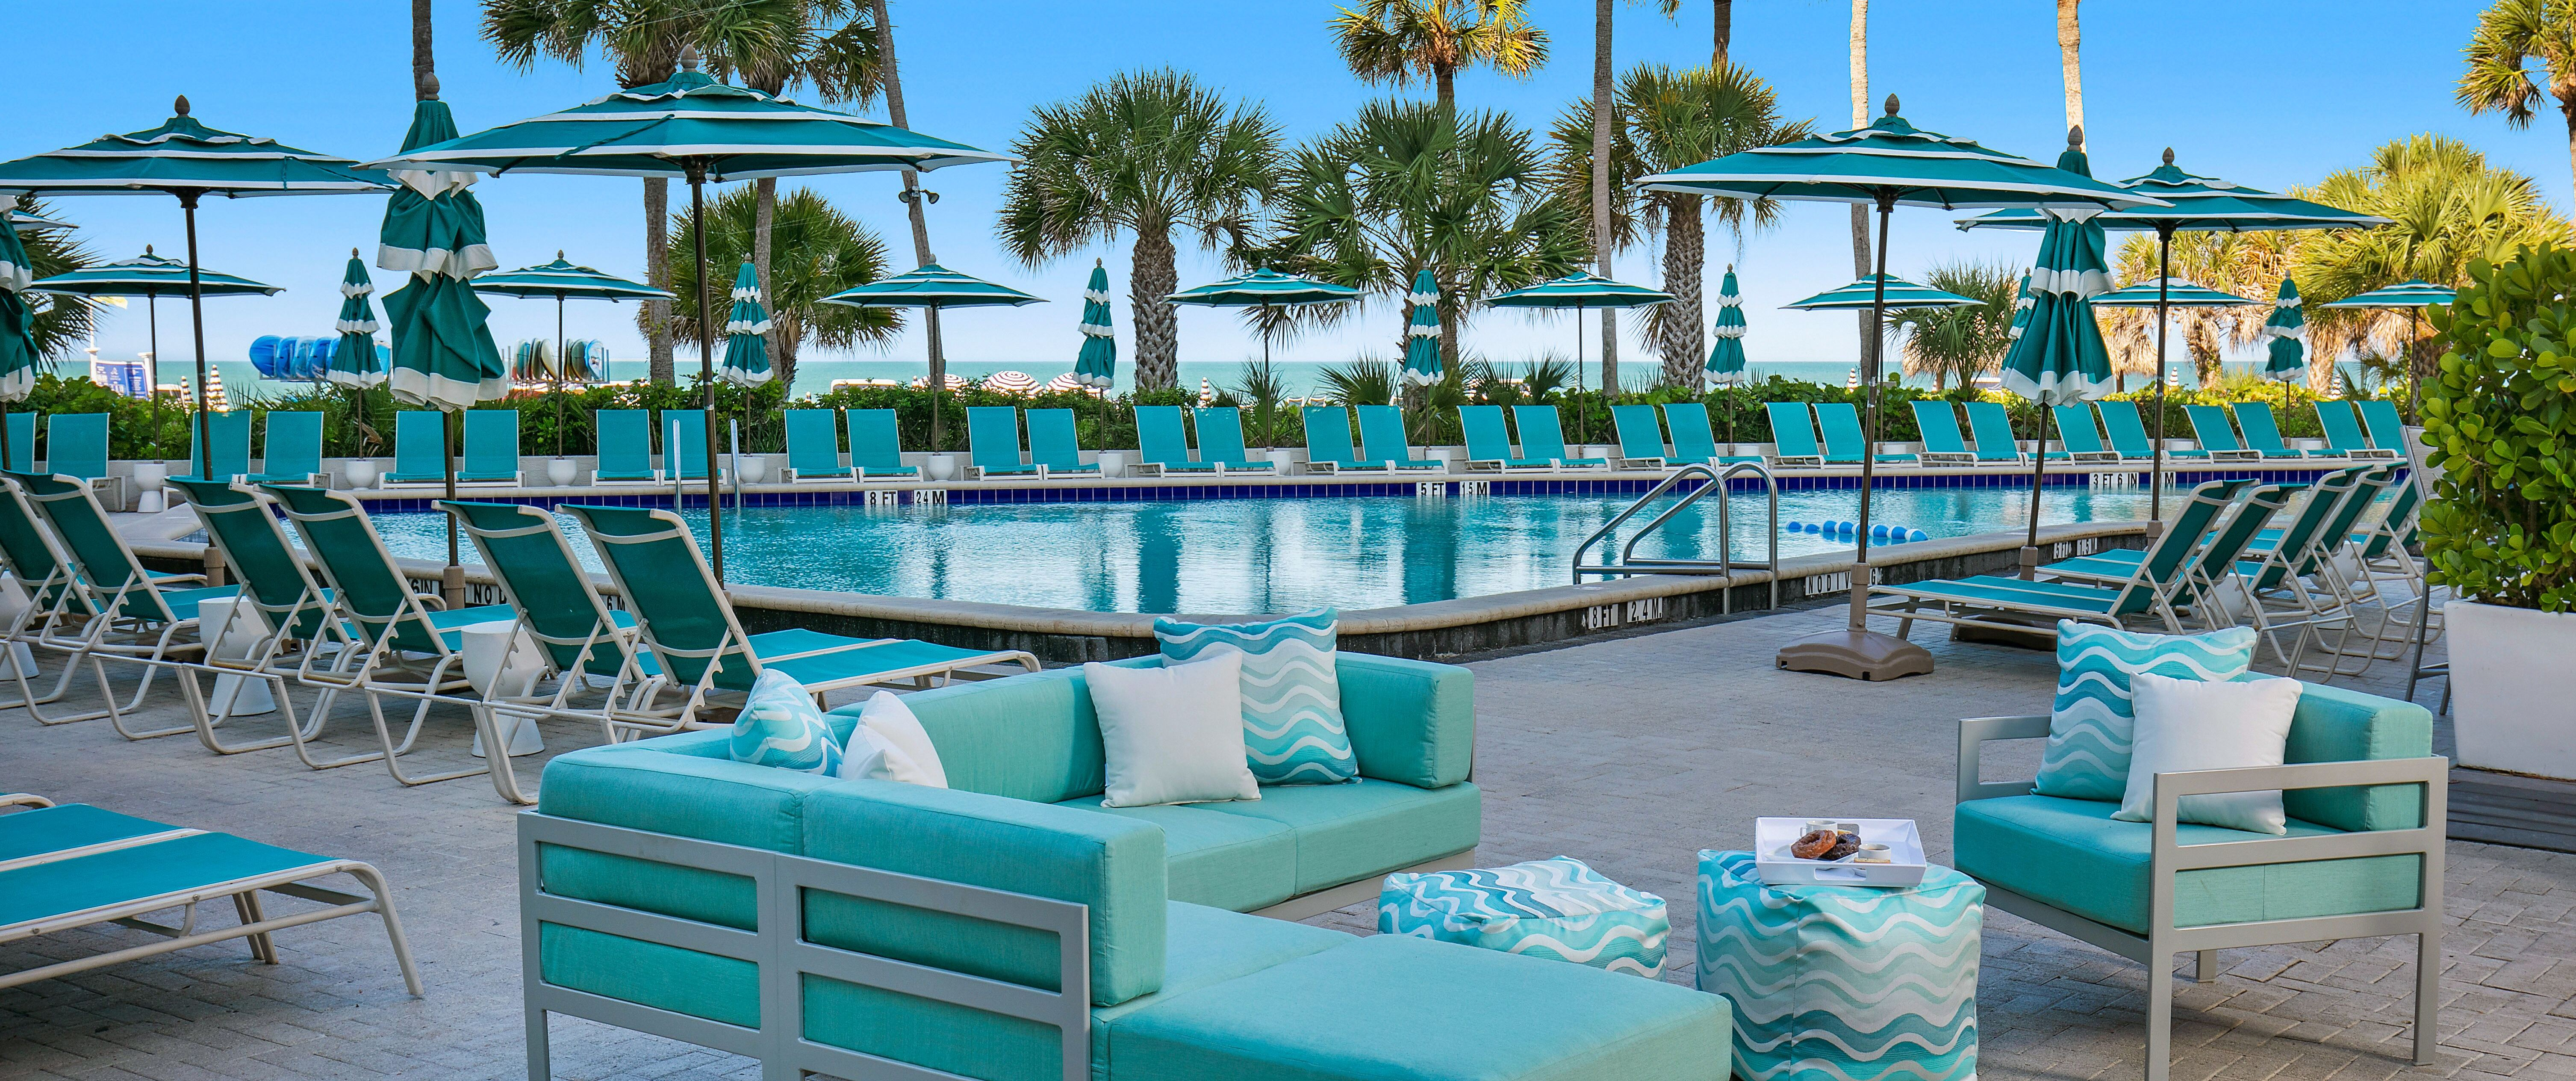 commercial outdoor pool patio furniture